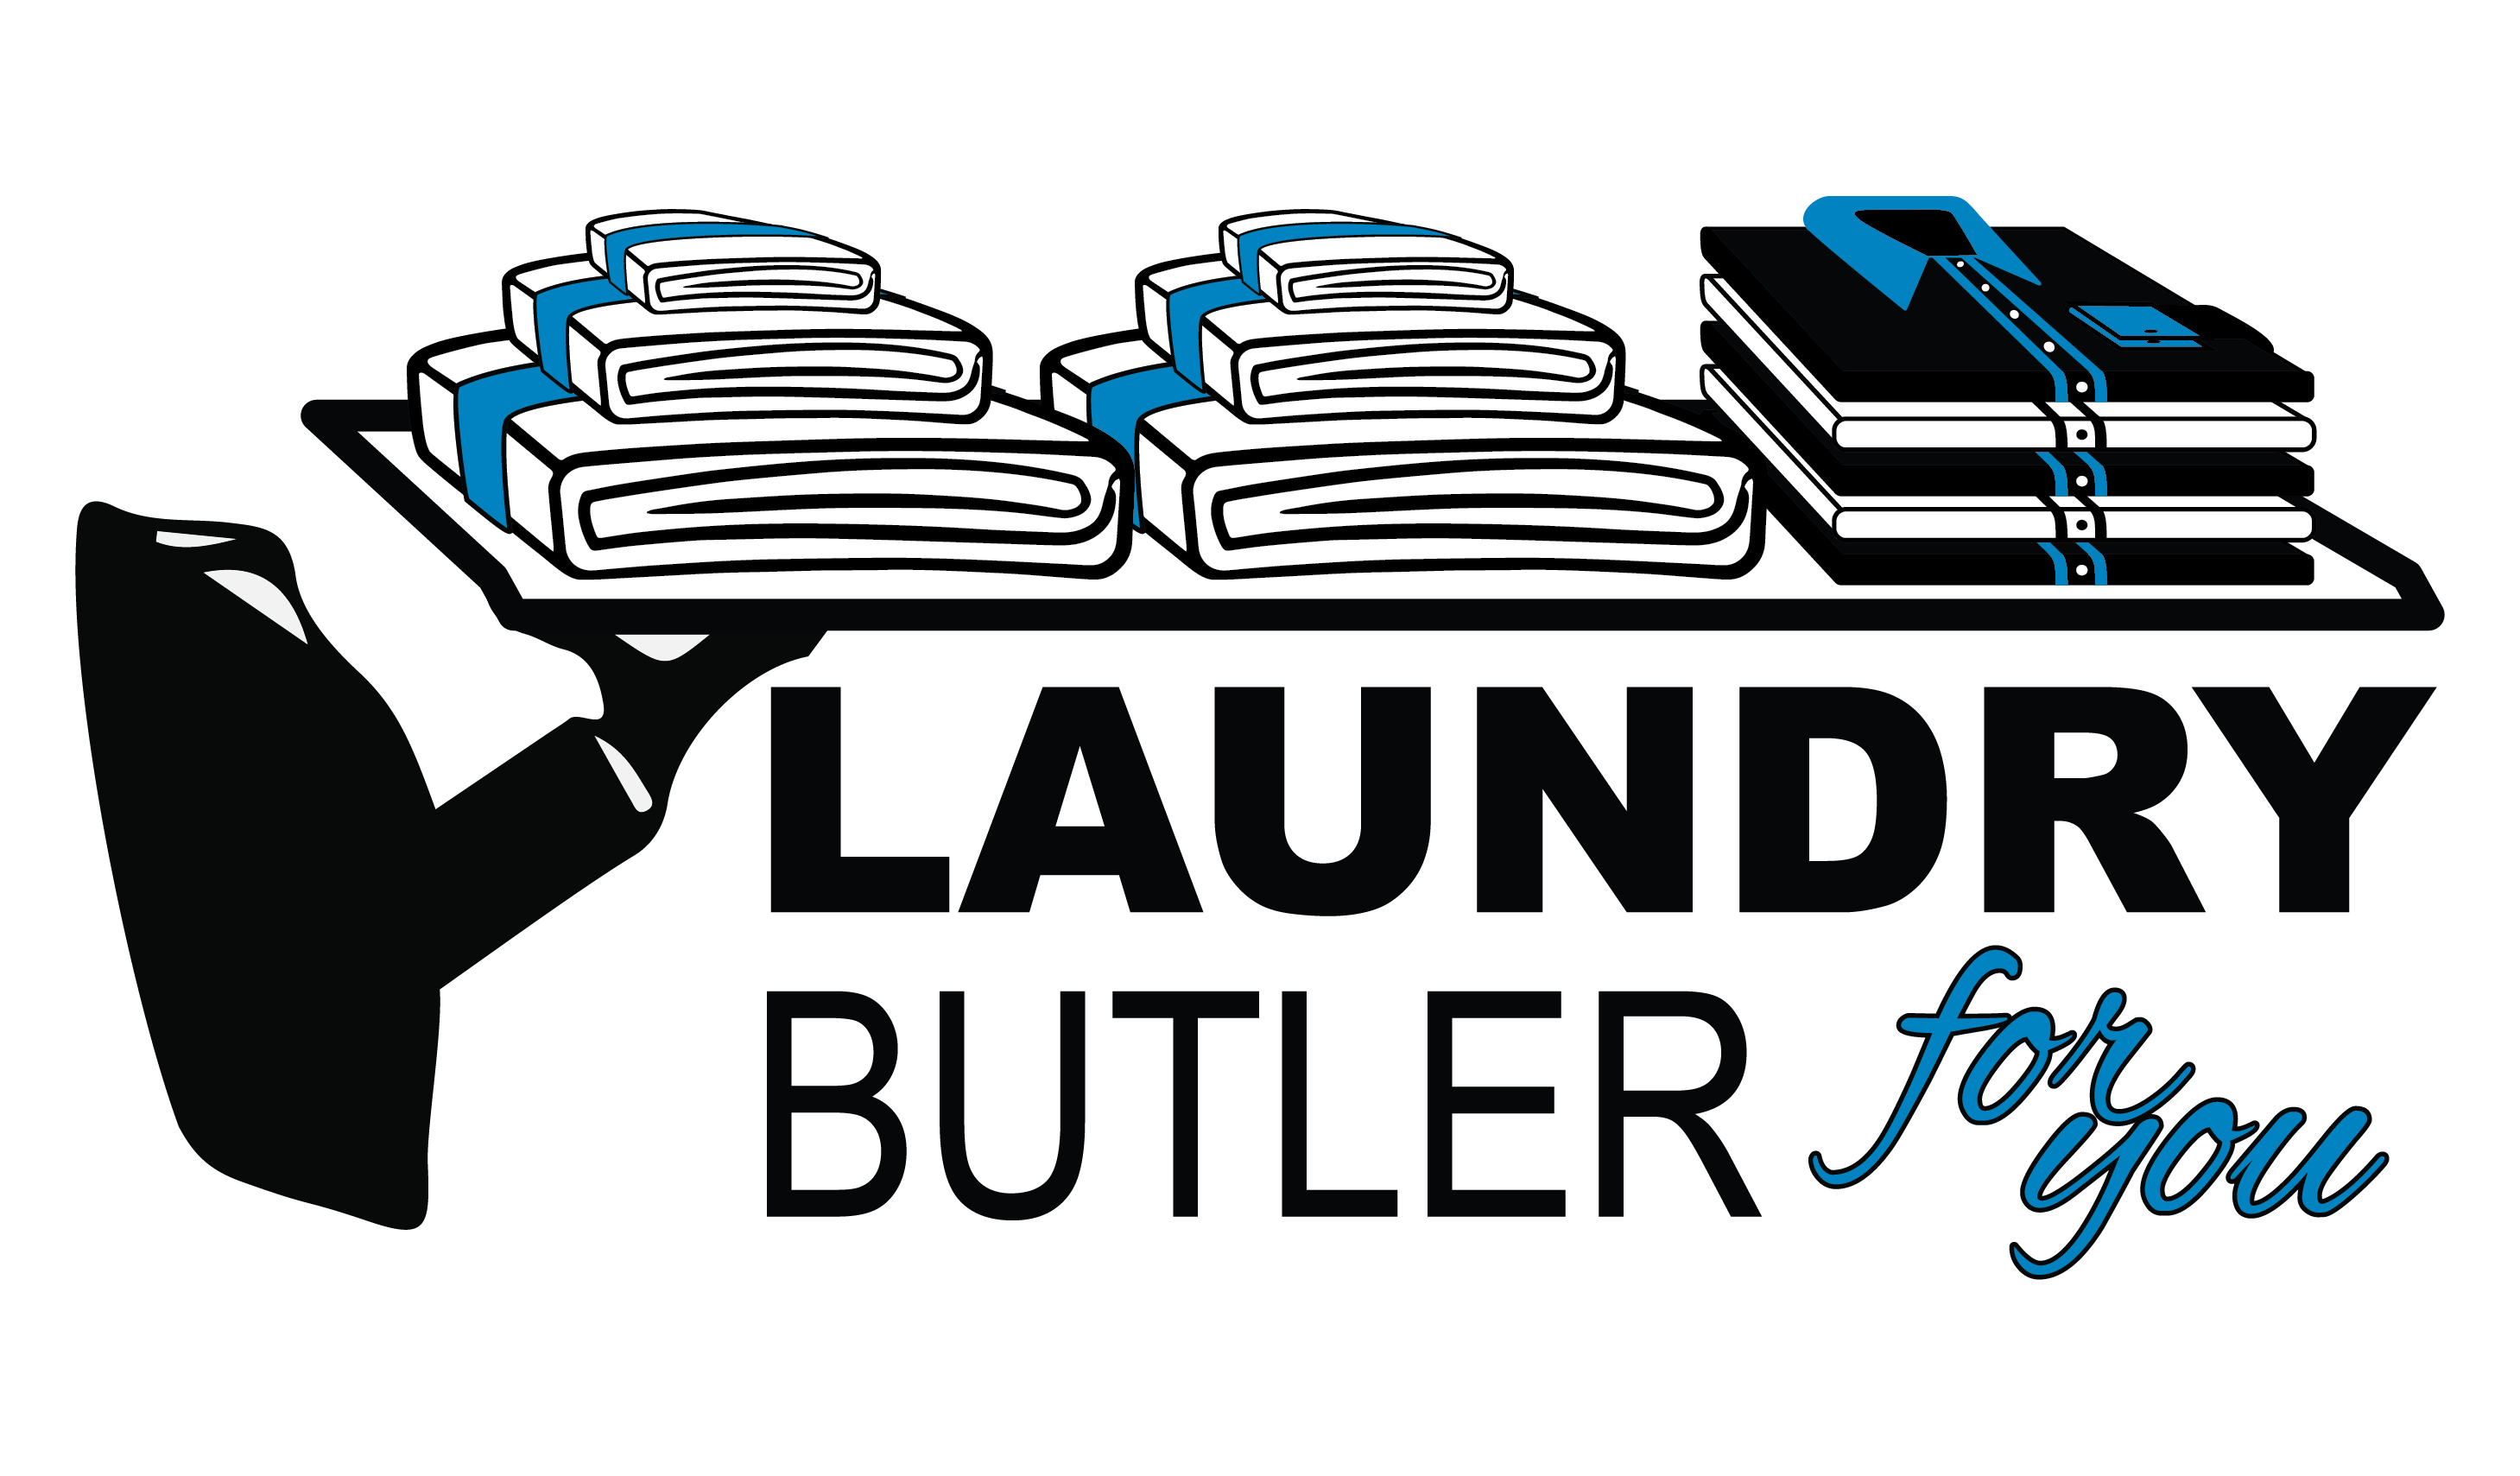 Laundry Butler For You